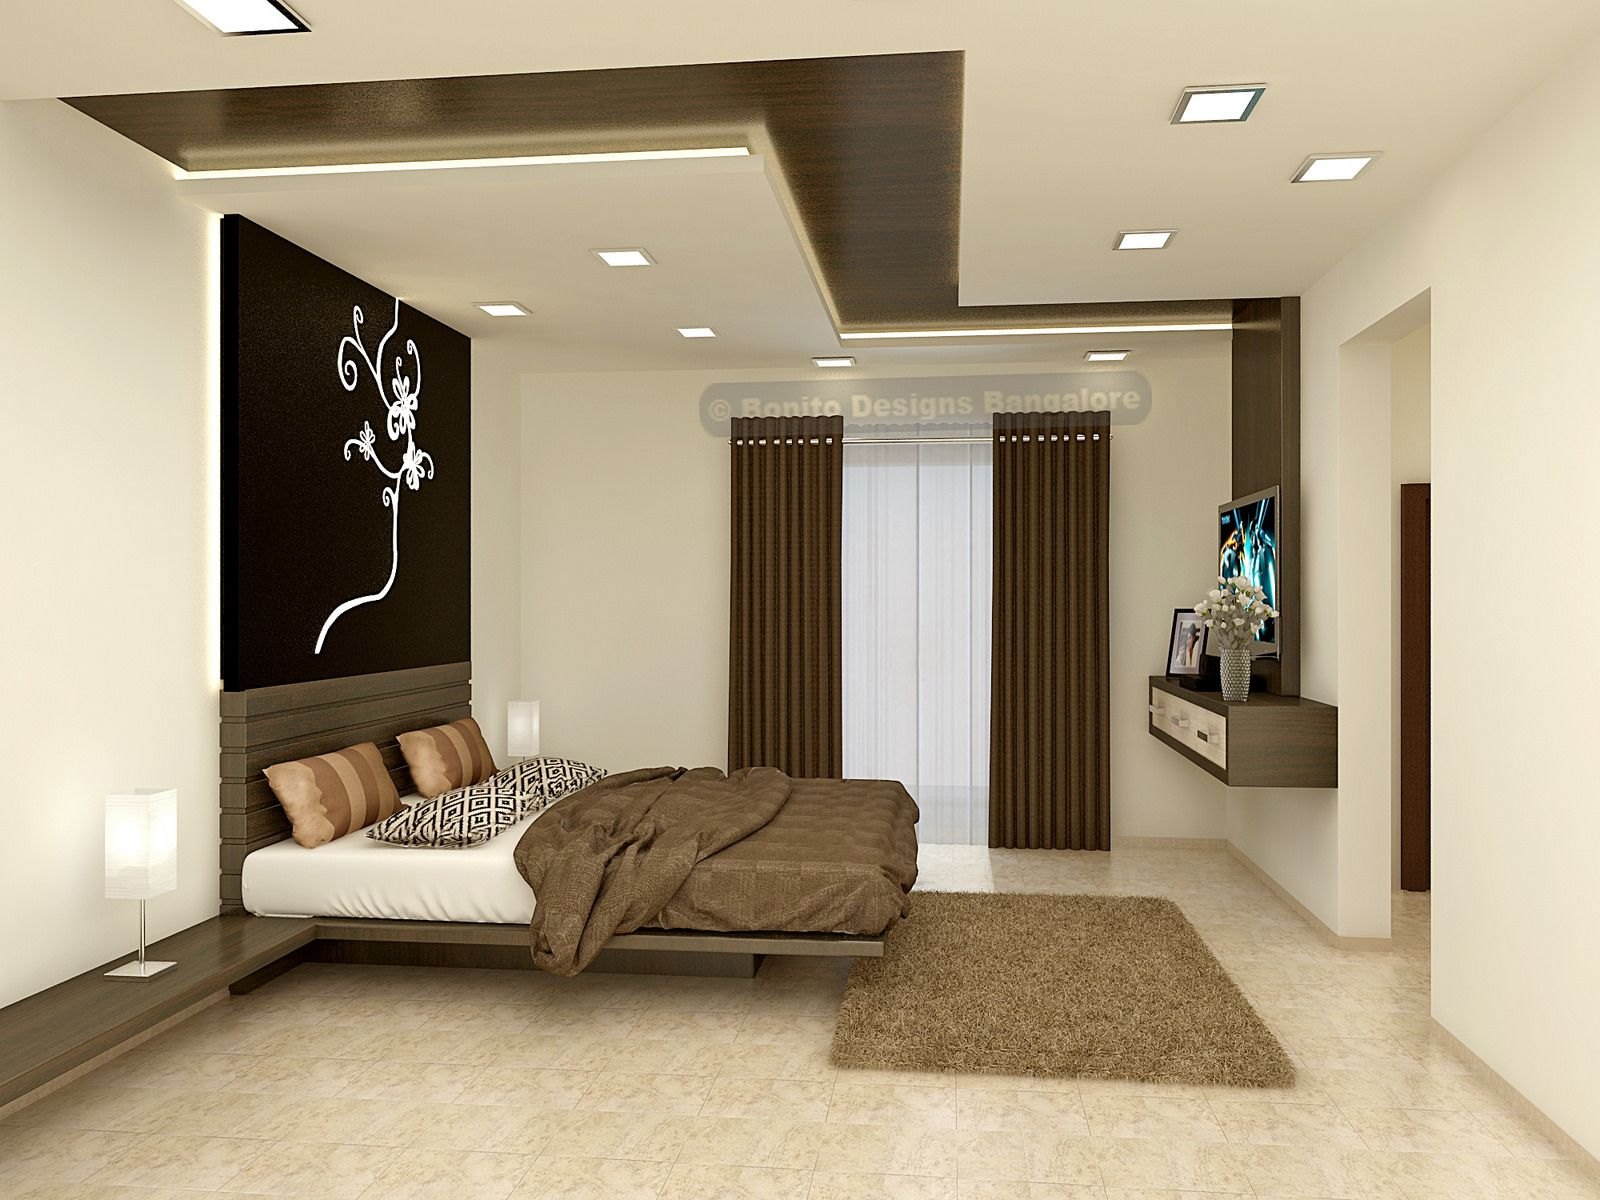 Sandepmbr 1 Ceilings Bedrooms And Ceiling